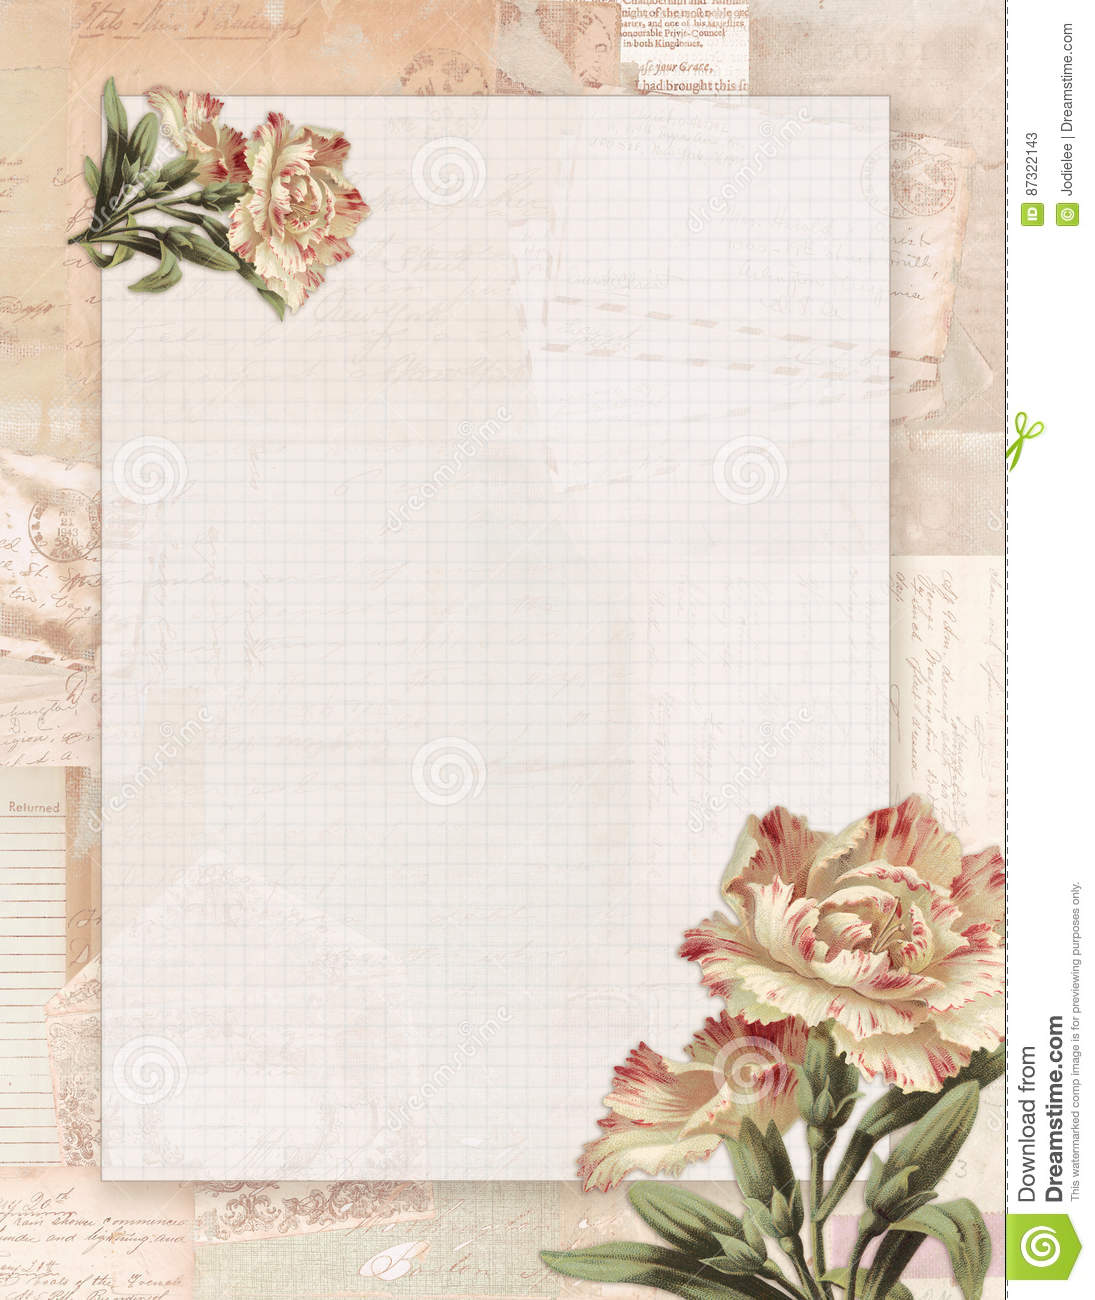 photo regarding Stationary Printable identified as Printable Typical Shabby Stylish Style and design Floral Rose Stationary